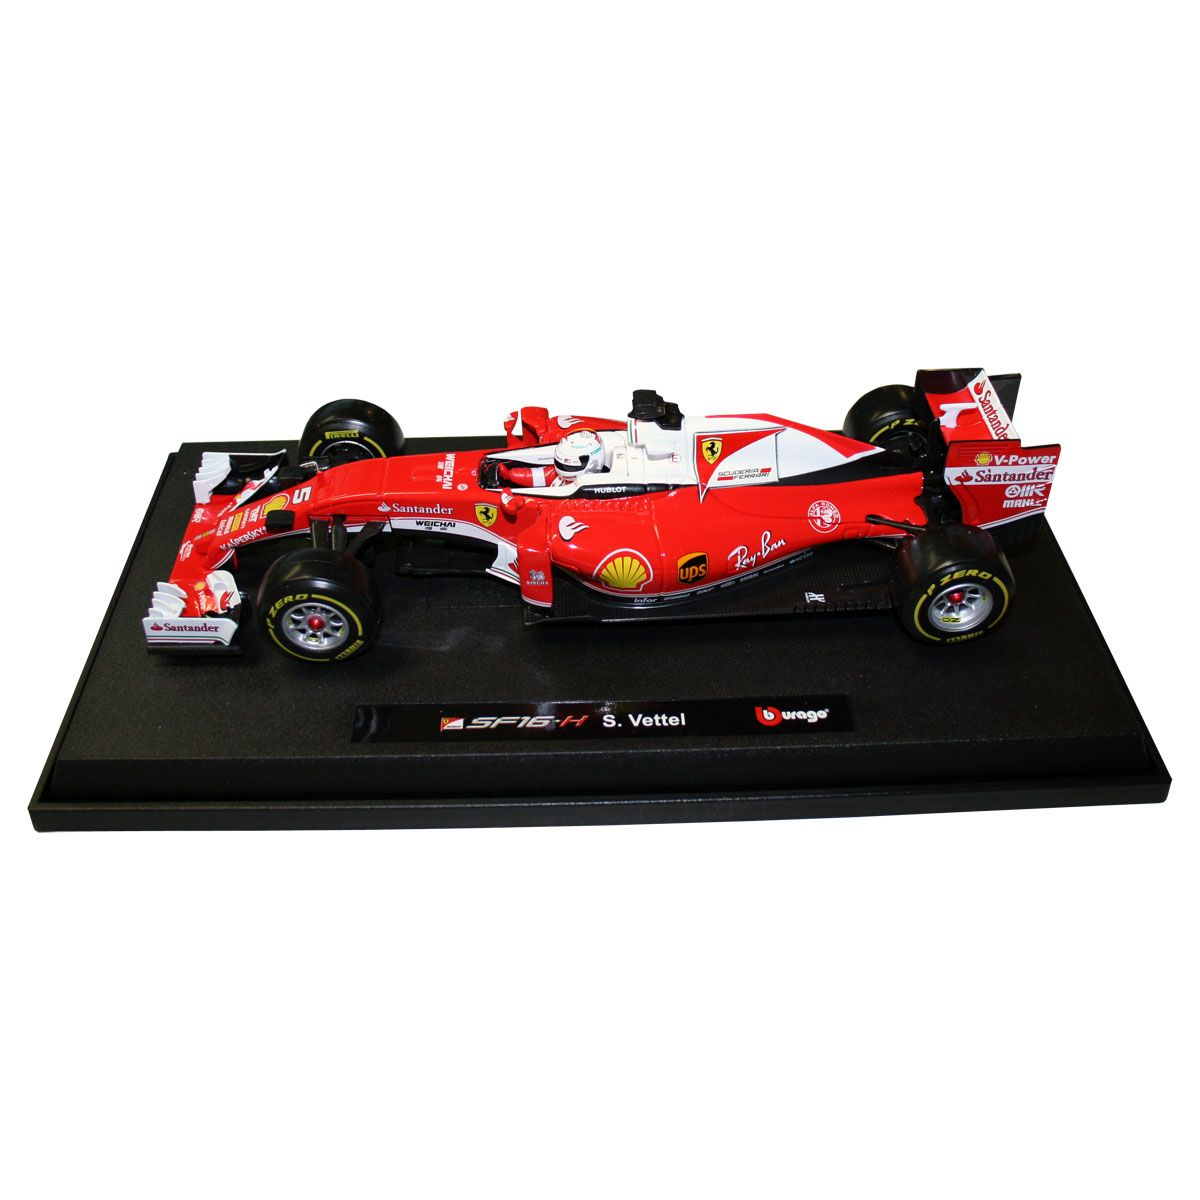 modelle ferrari formel 1 motorsport fanemotion. Black Bedroom Furniture Sets. Home Design Ideas